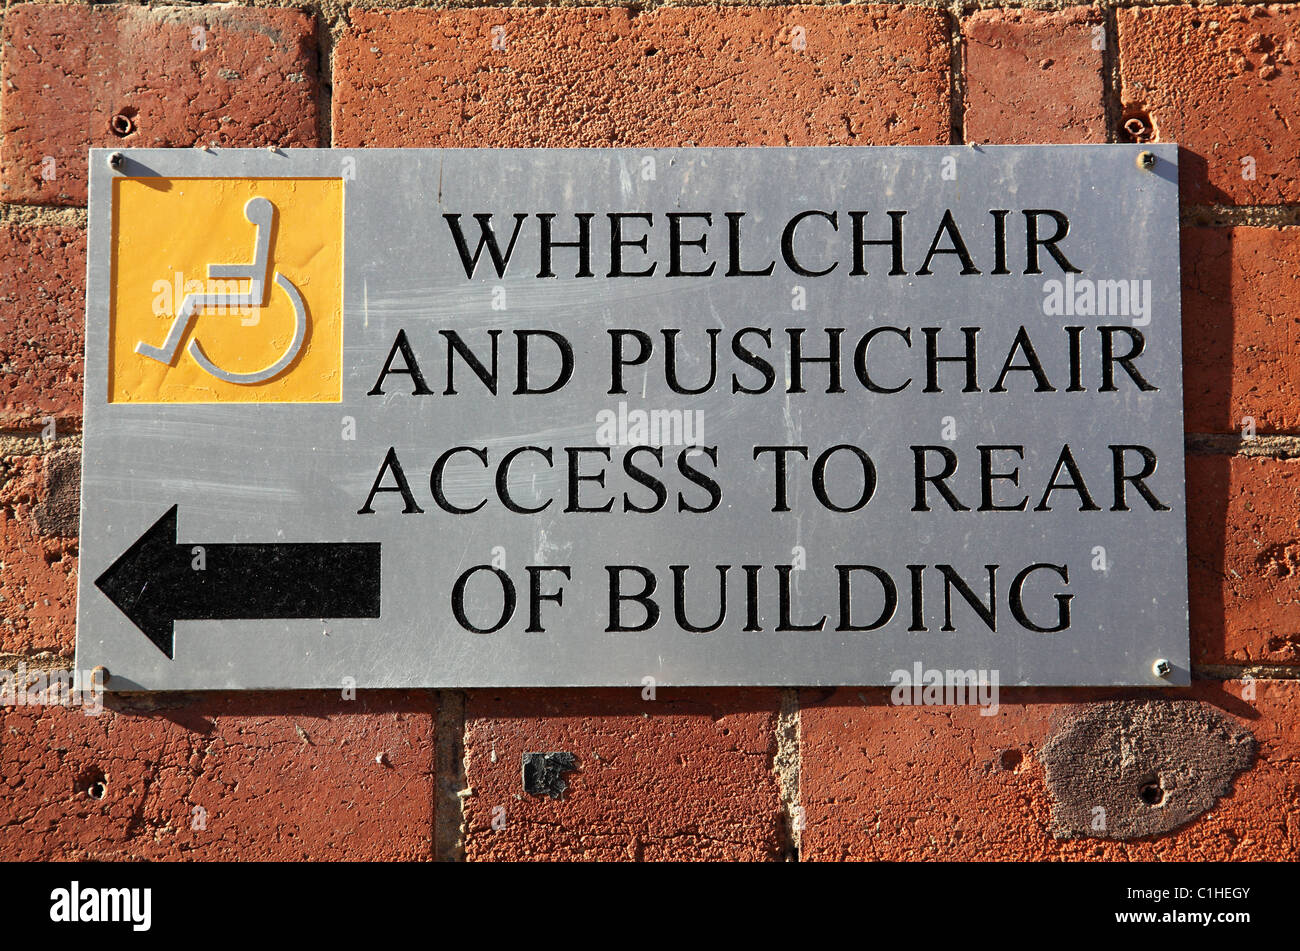 Disabled access sign on a building in a U.K. city. - Stock Image